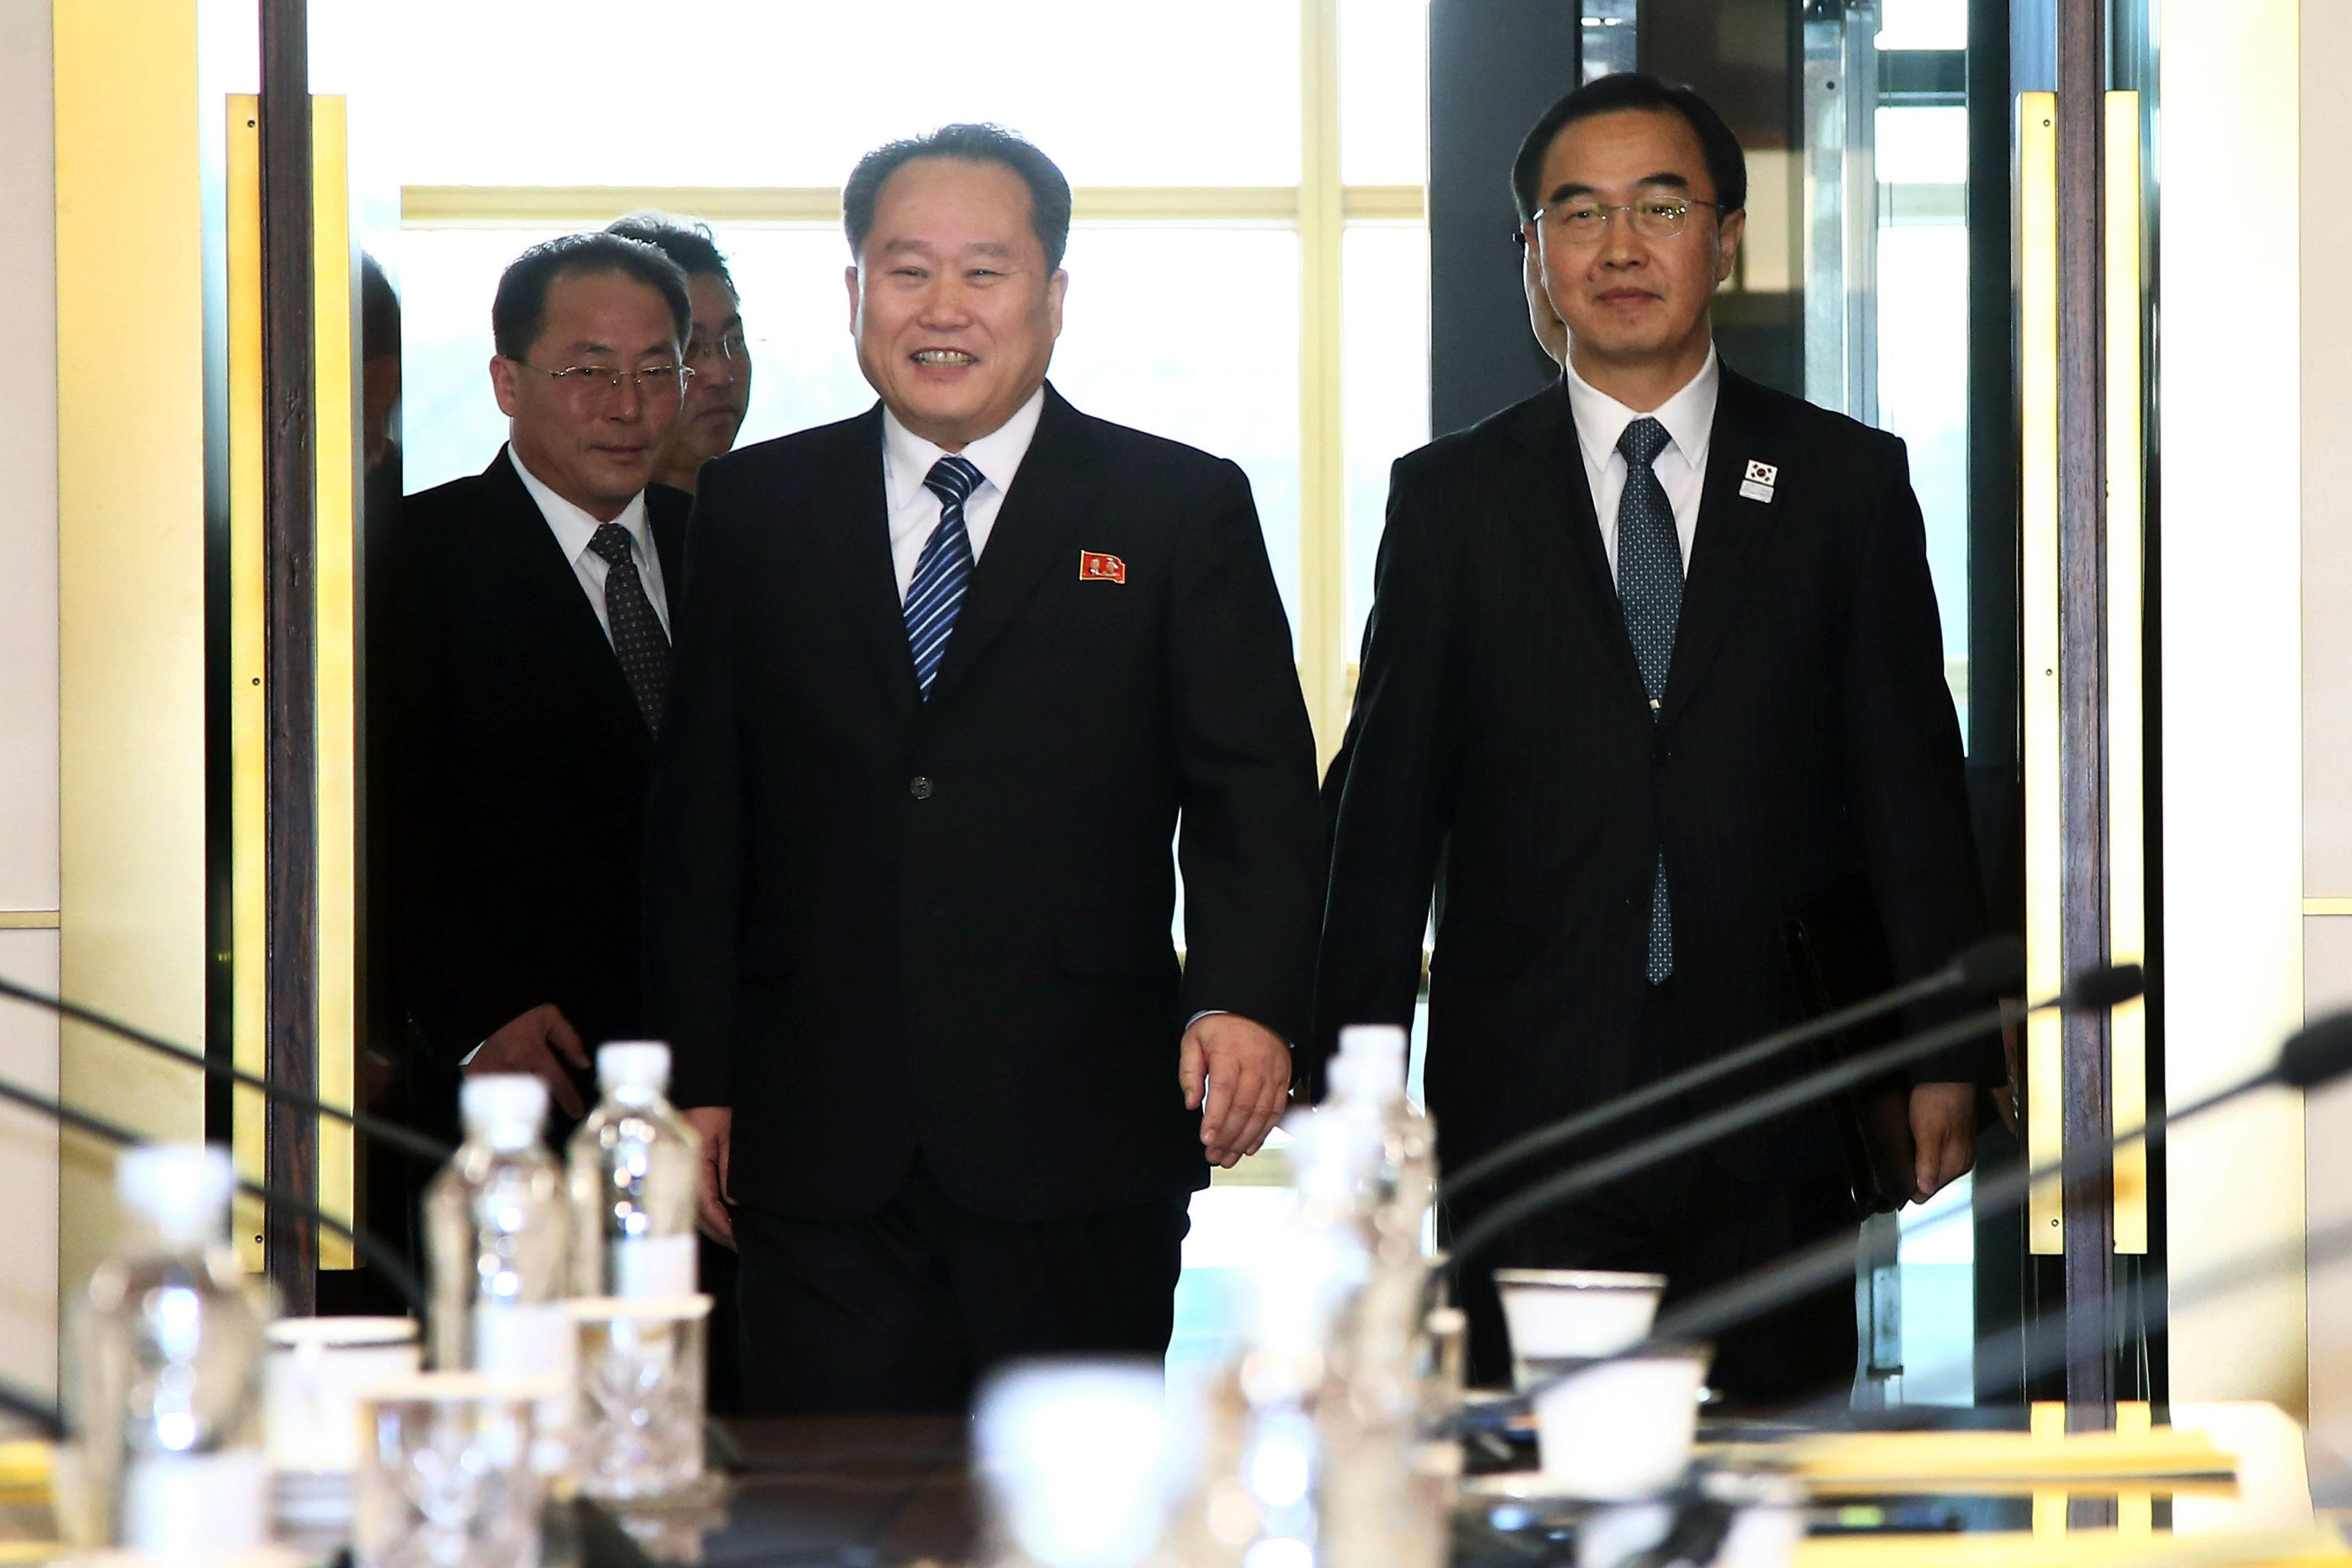 Ri Son Gwon, chairman of North Koreas Committee for the Peaceful Reunification of the Fatherland, center, and Cho Myoung-gyon, South Korea's unification minister, right, arrive for a meeting in the village of Panmunjom in the Demilitarized Zone (DMZ) in Paju, South Korea, on Tuesday, Jan. 9, 2018. North Korea's chief negotiator urged his South Korean counterpart to consider allowing a live broadcast of the talks that started today between the neighbors. Photographer: KPPA/Pool via Bloomberg